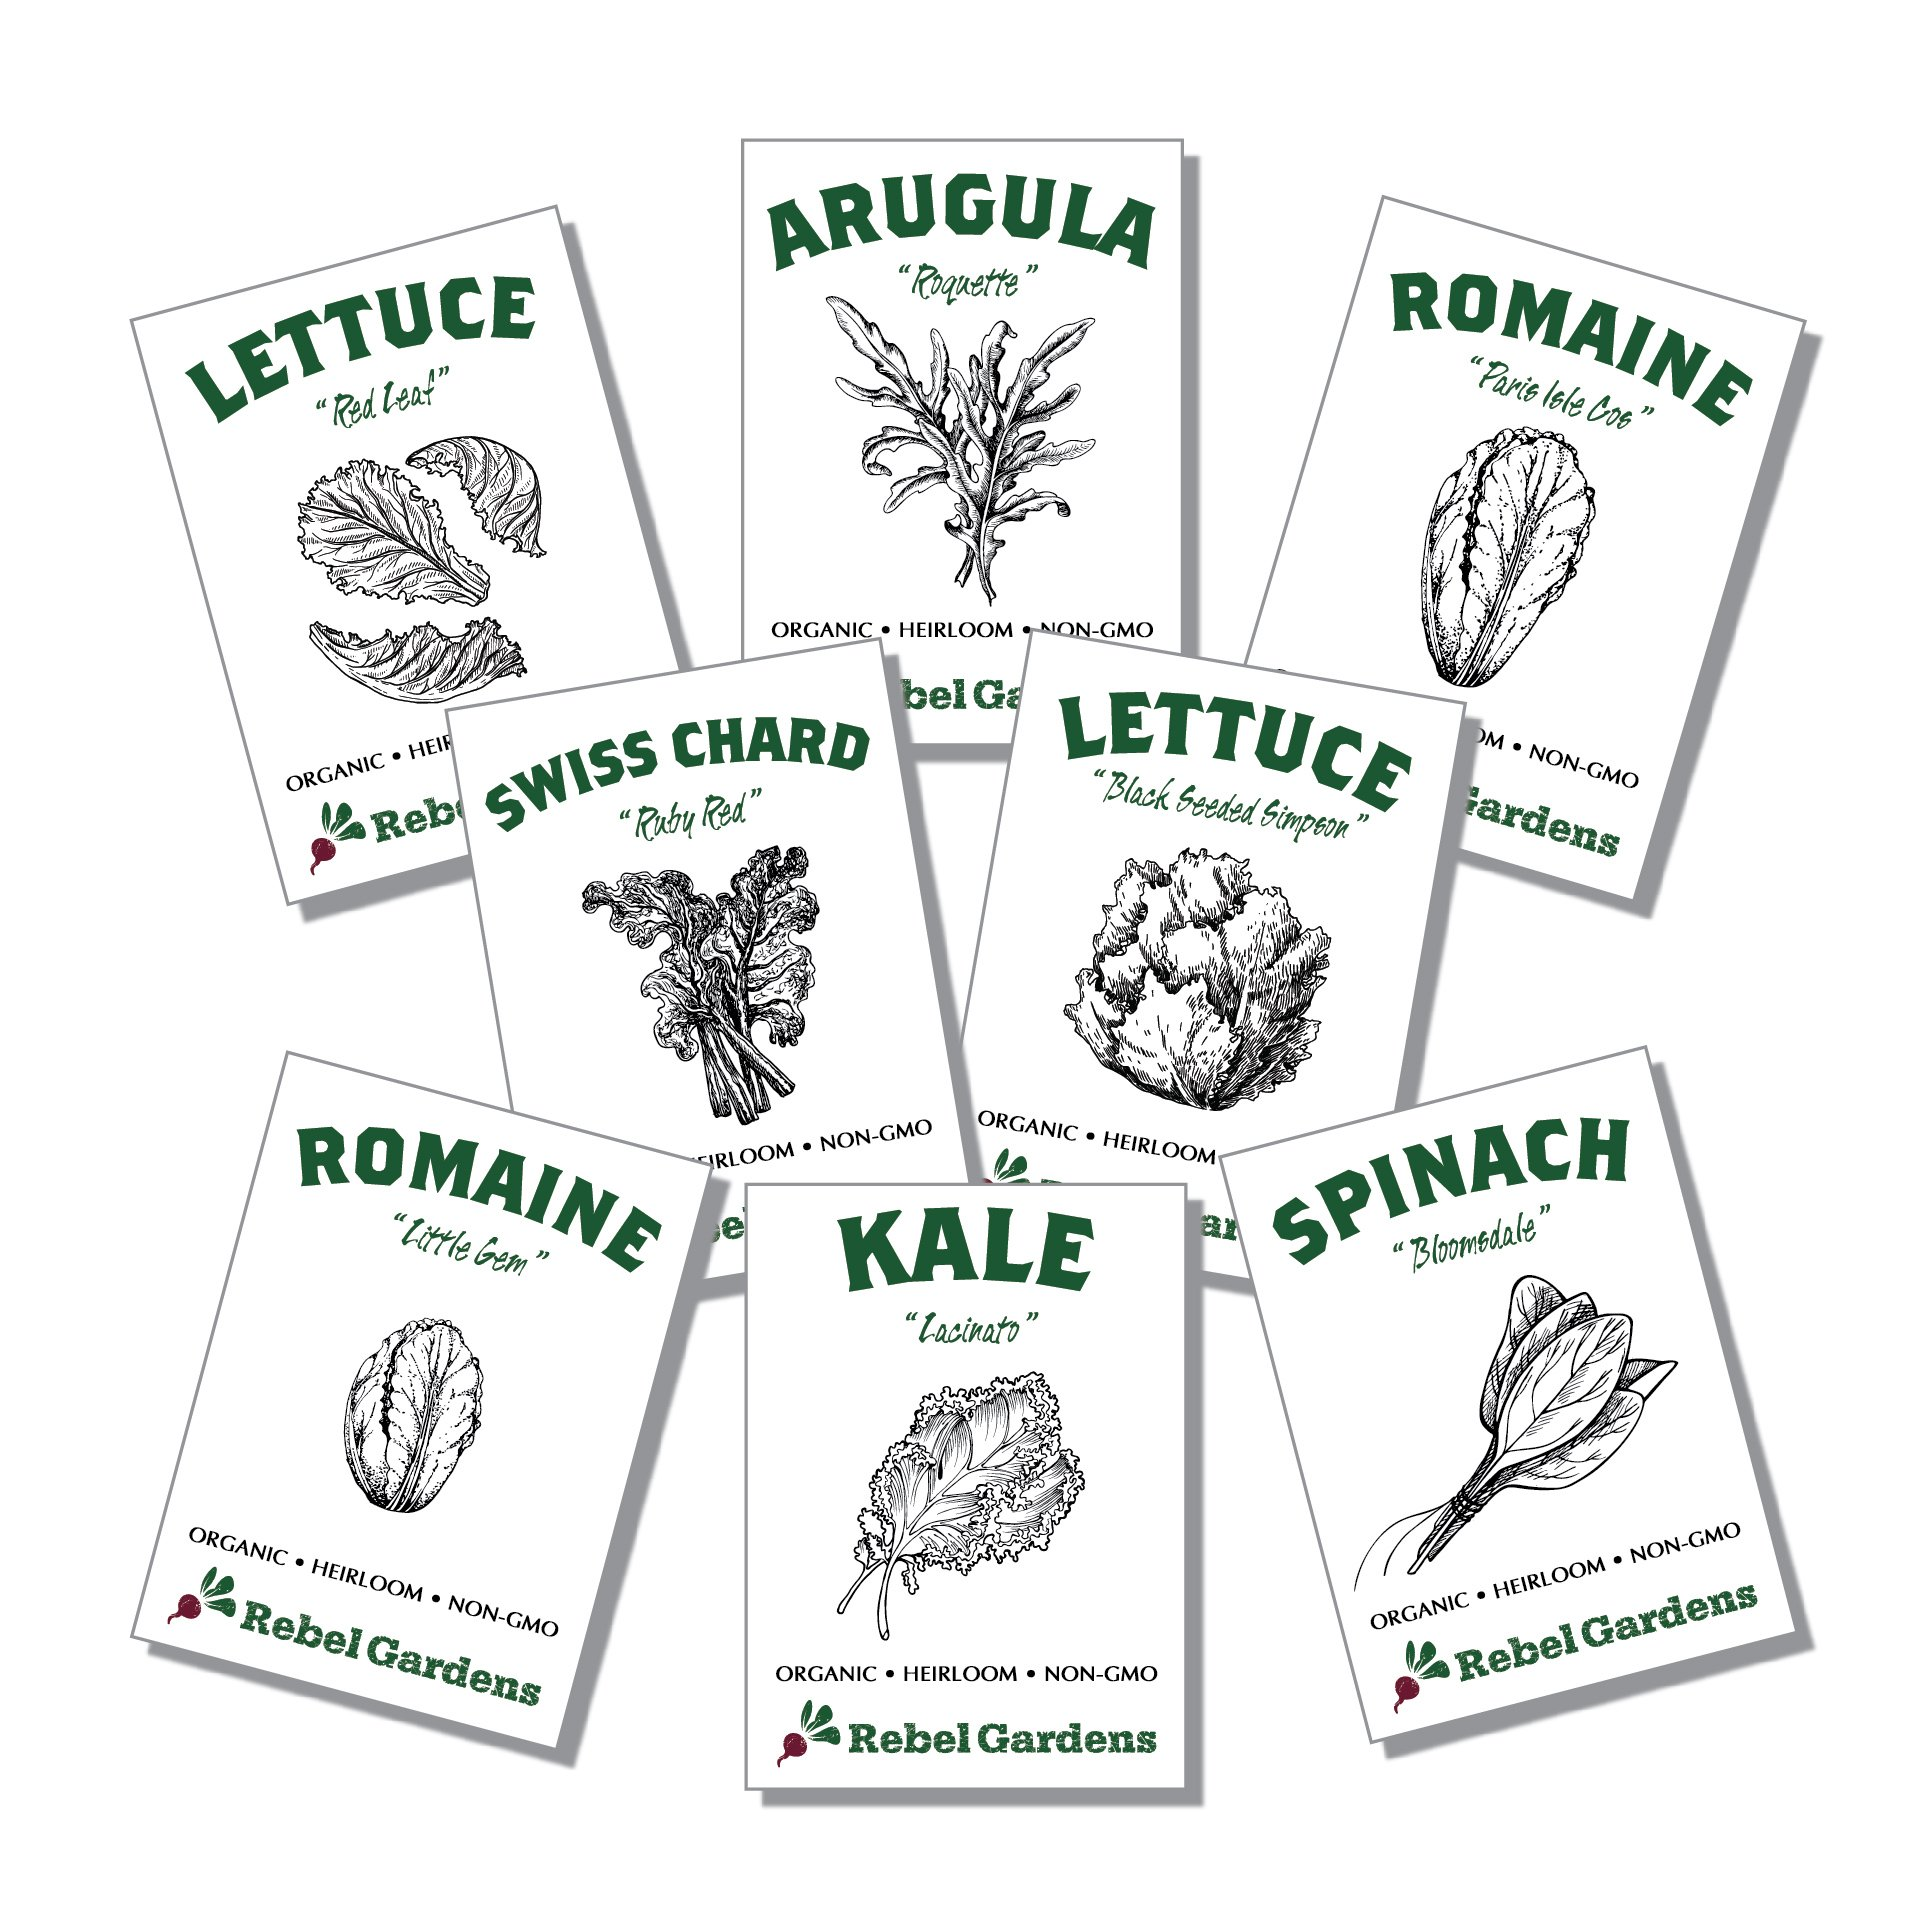 Organic Garden Greens Vegetable Seeds - 8 Varieties of Heirloom, Non-GMO Salad Greens Seeds - Lettuce, Arugula, Swiss Chard, Kale, and Spinach